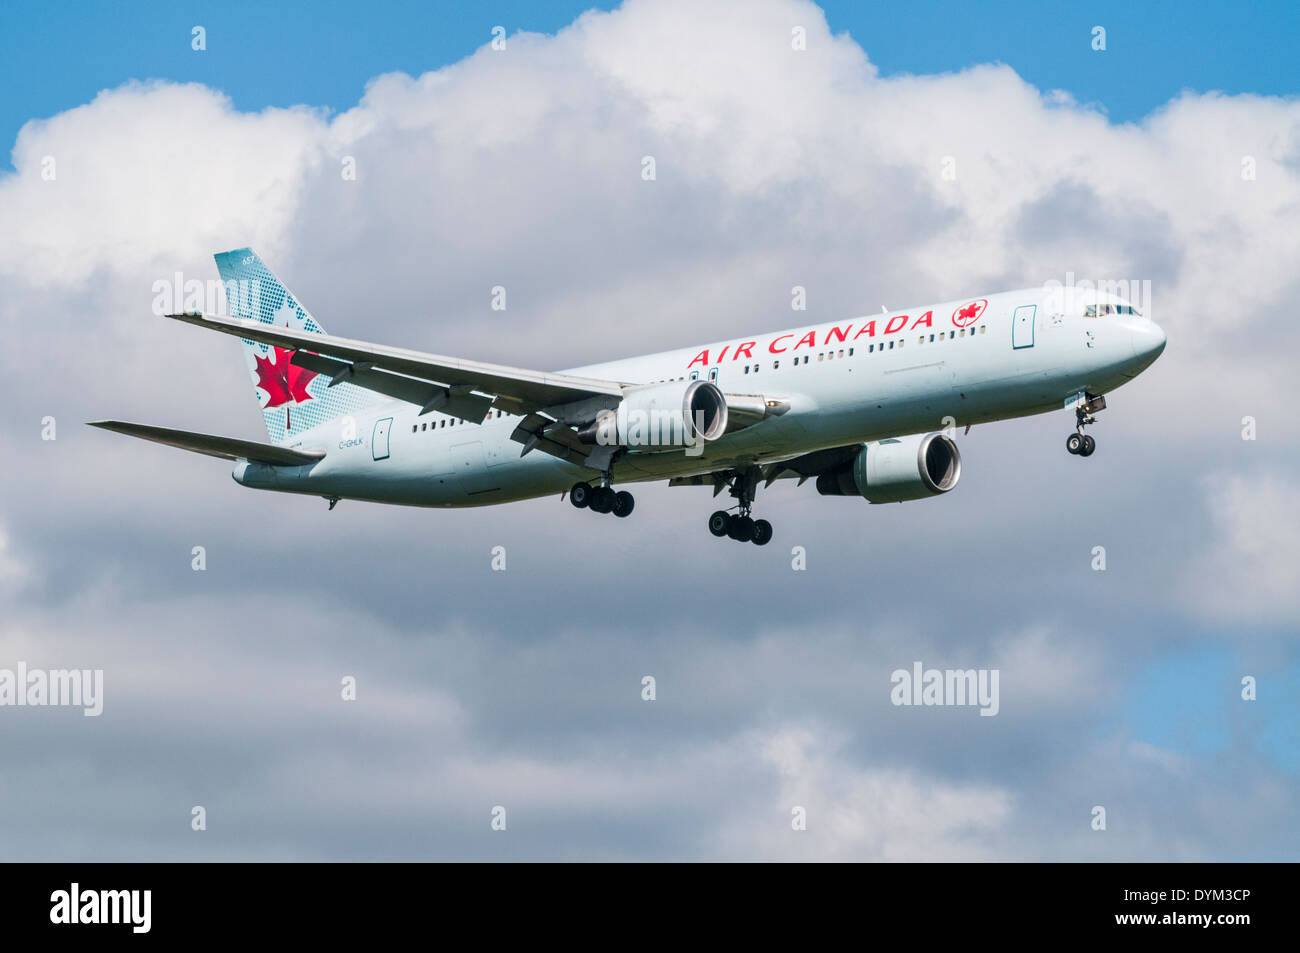 Air Canada Boeing 777 Aircraft On Approach To Land With Landing Gear Down